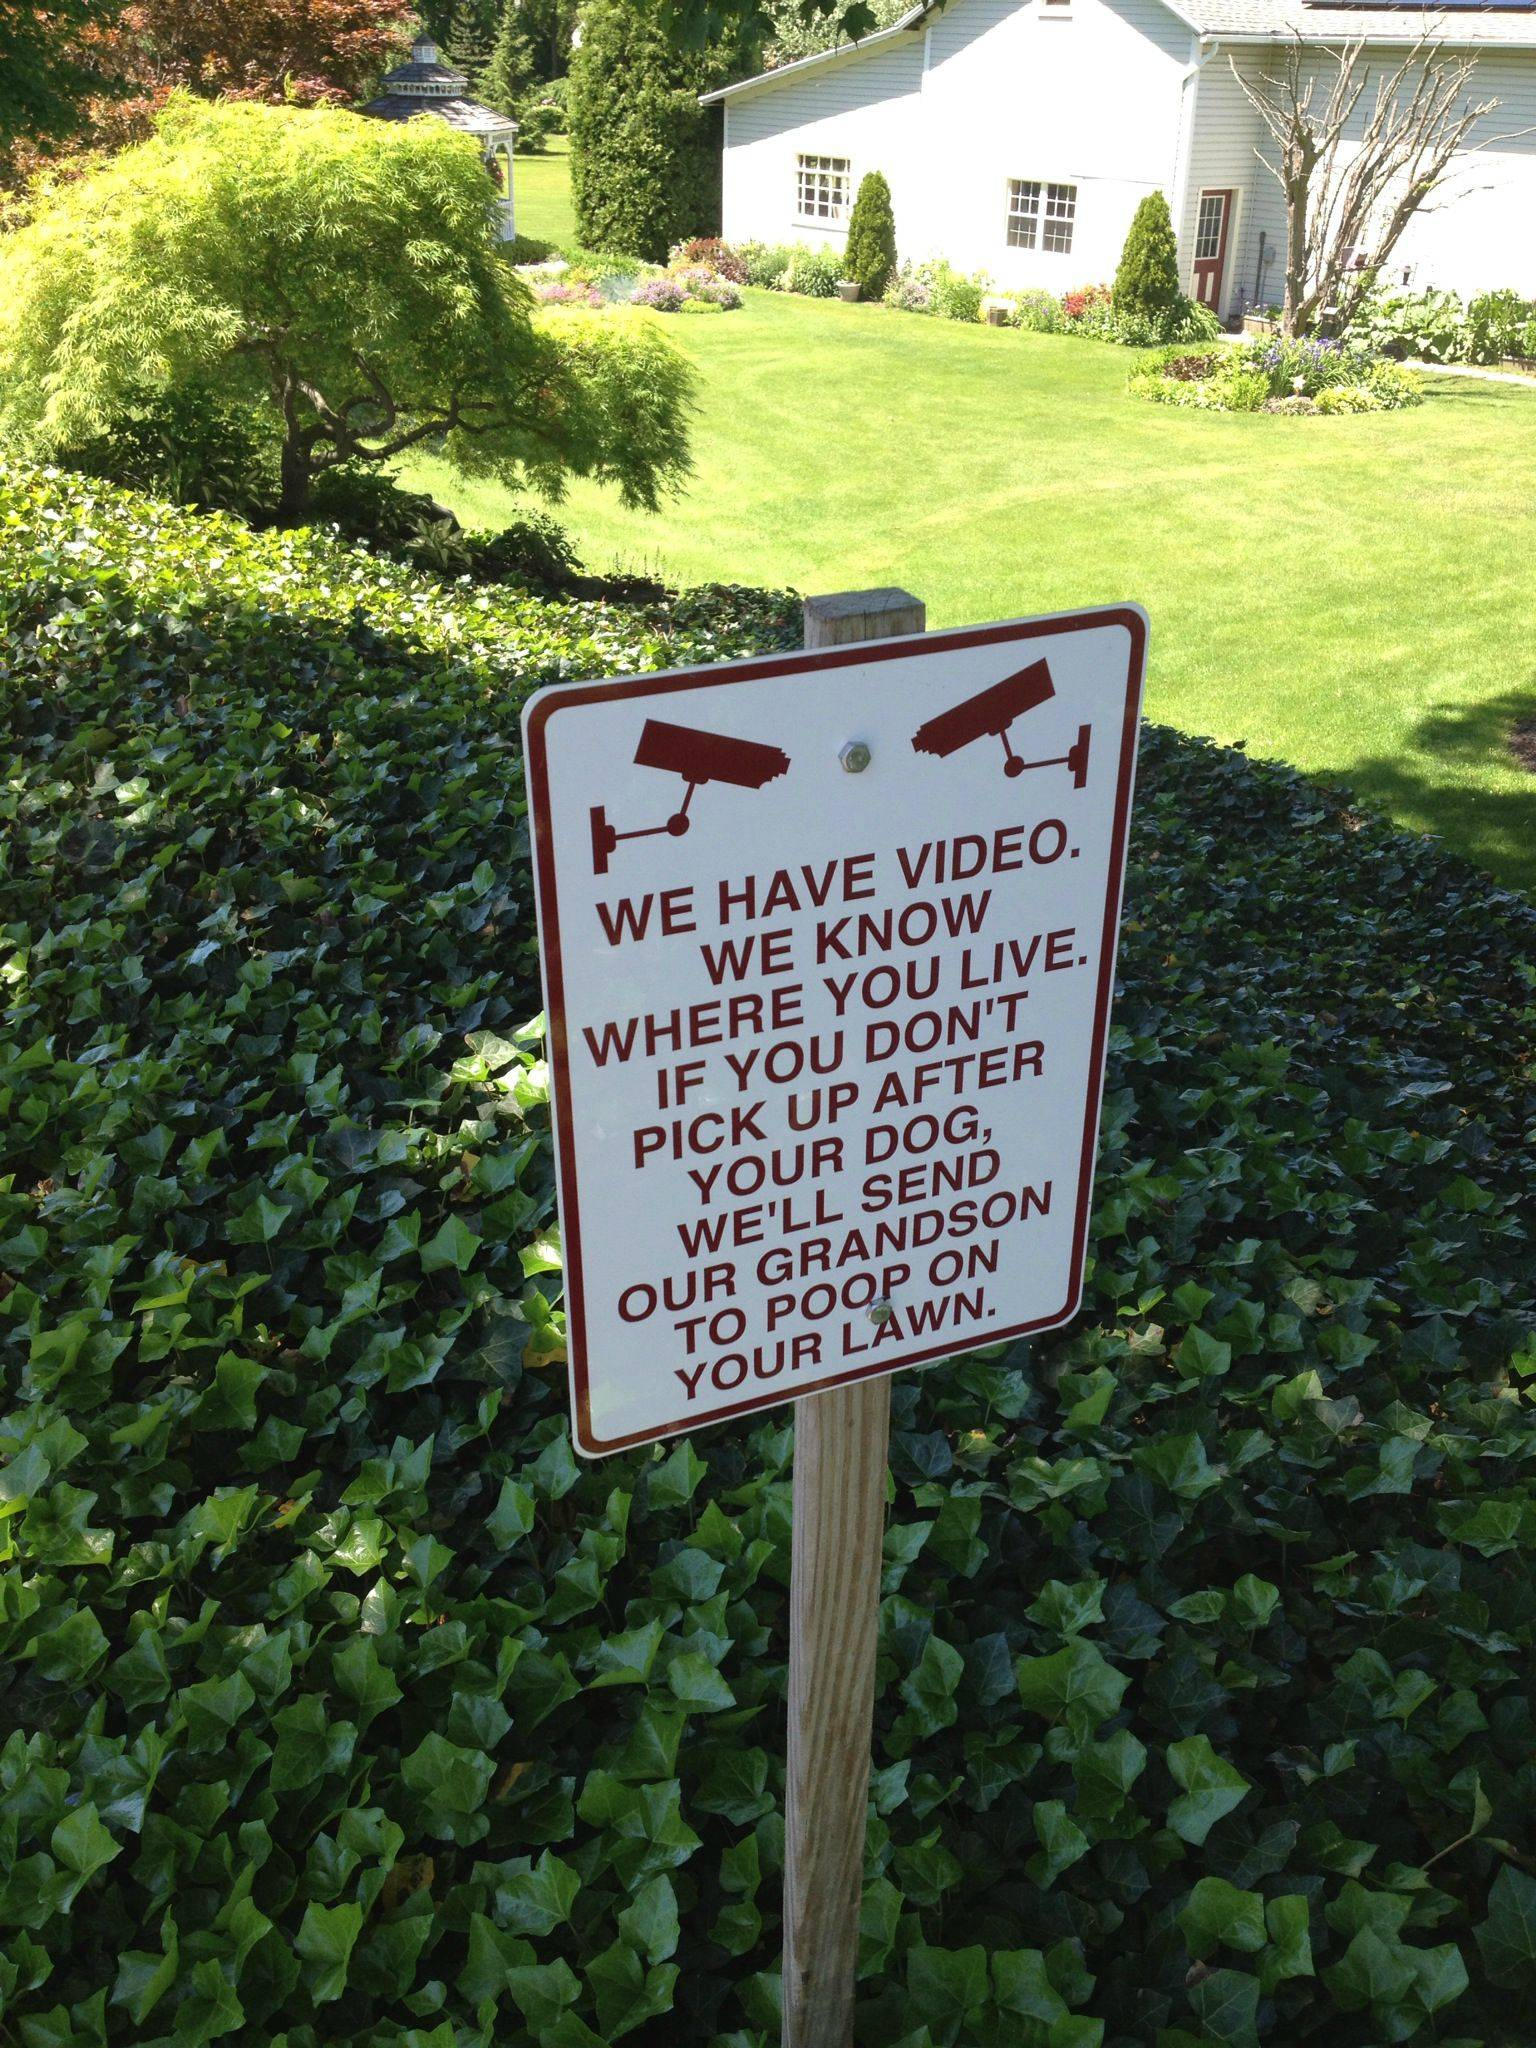 The Funniest Signs You've Never Read! - Image 30